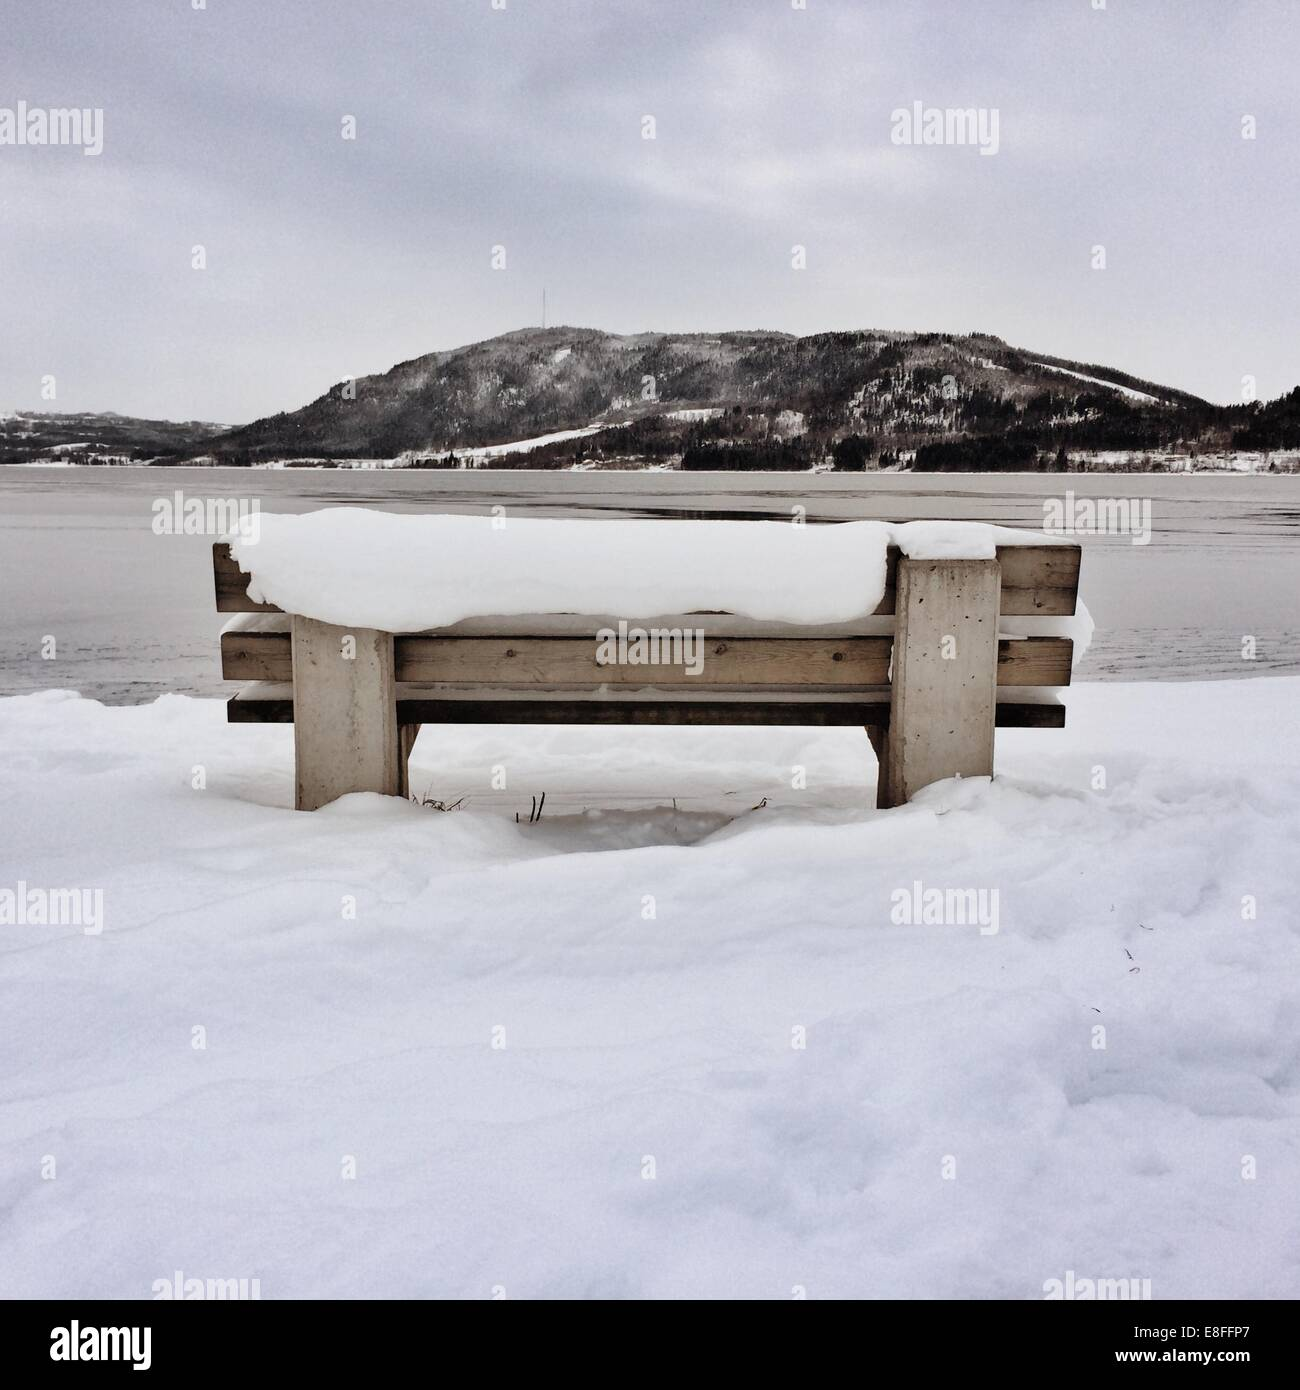 Snow covered bench by fjord, Norway - Stock Image